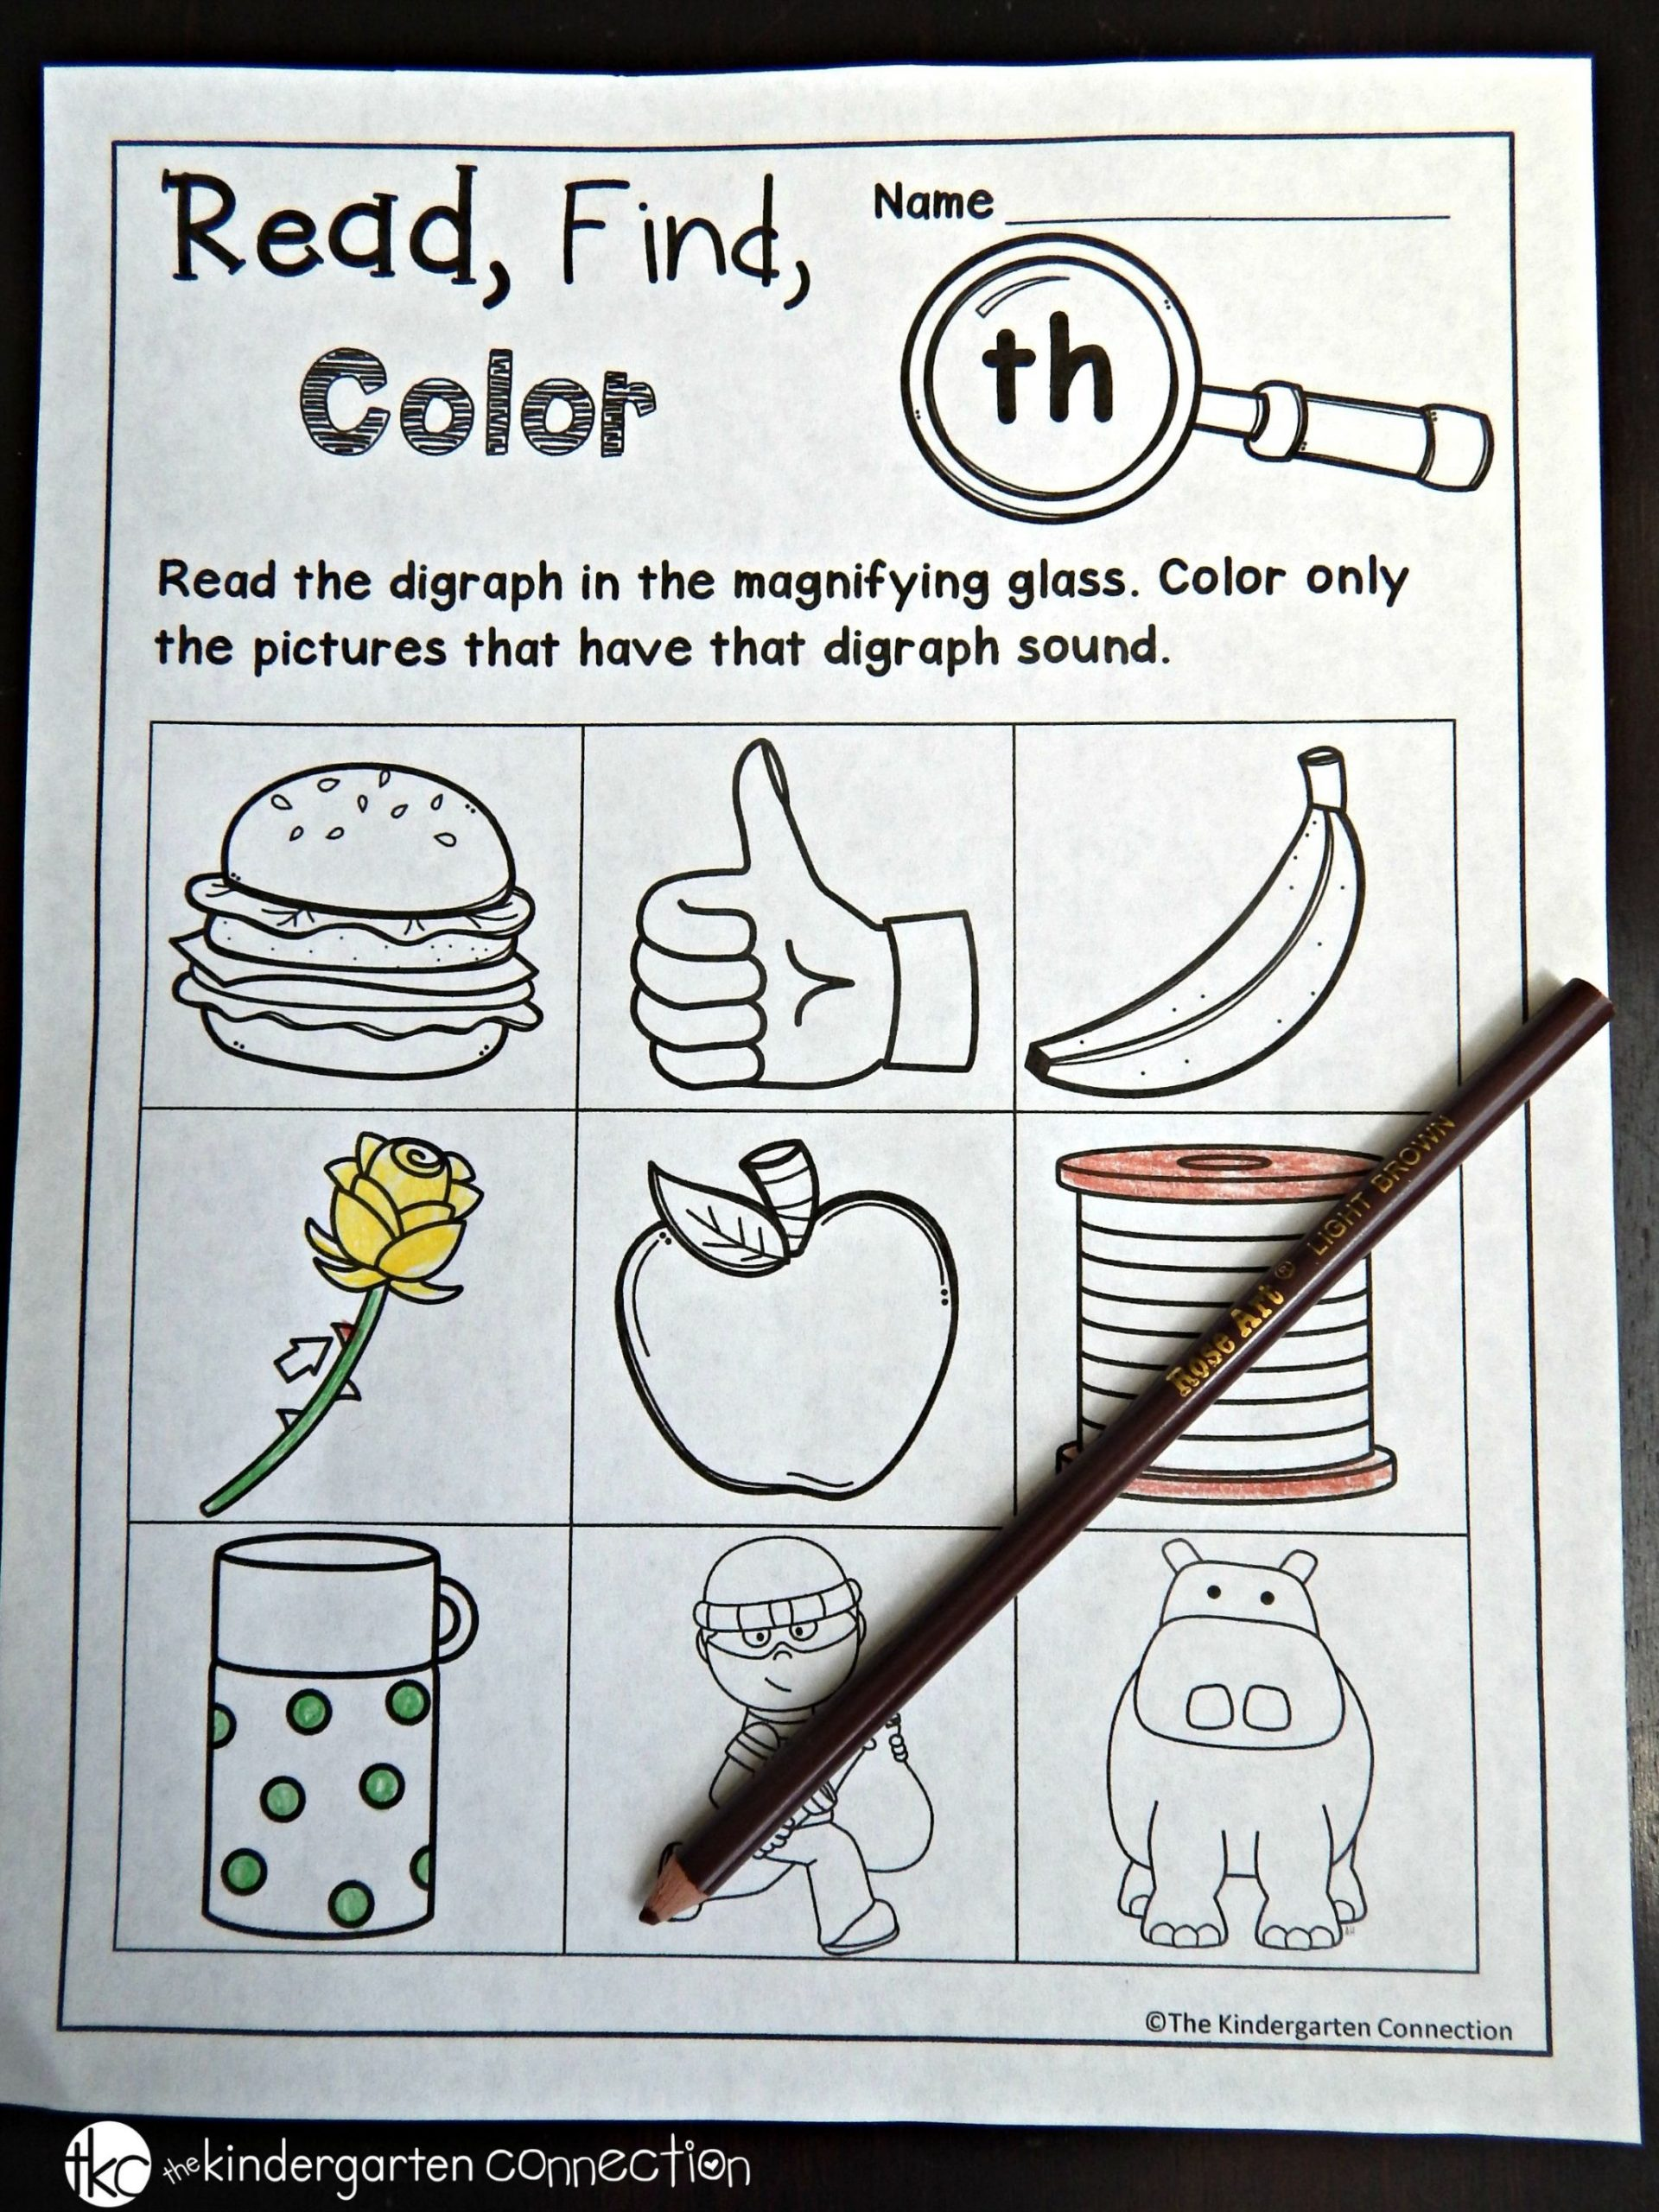 Th Worksheets for Kindergarten Free Digraph and Cvce Printables the Kindergarten Connection